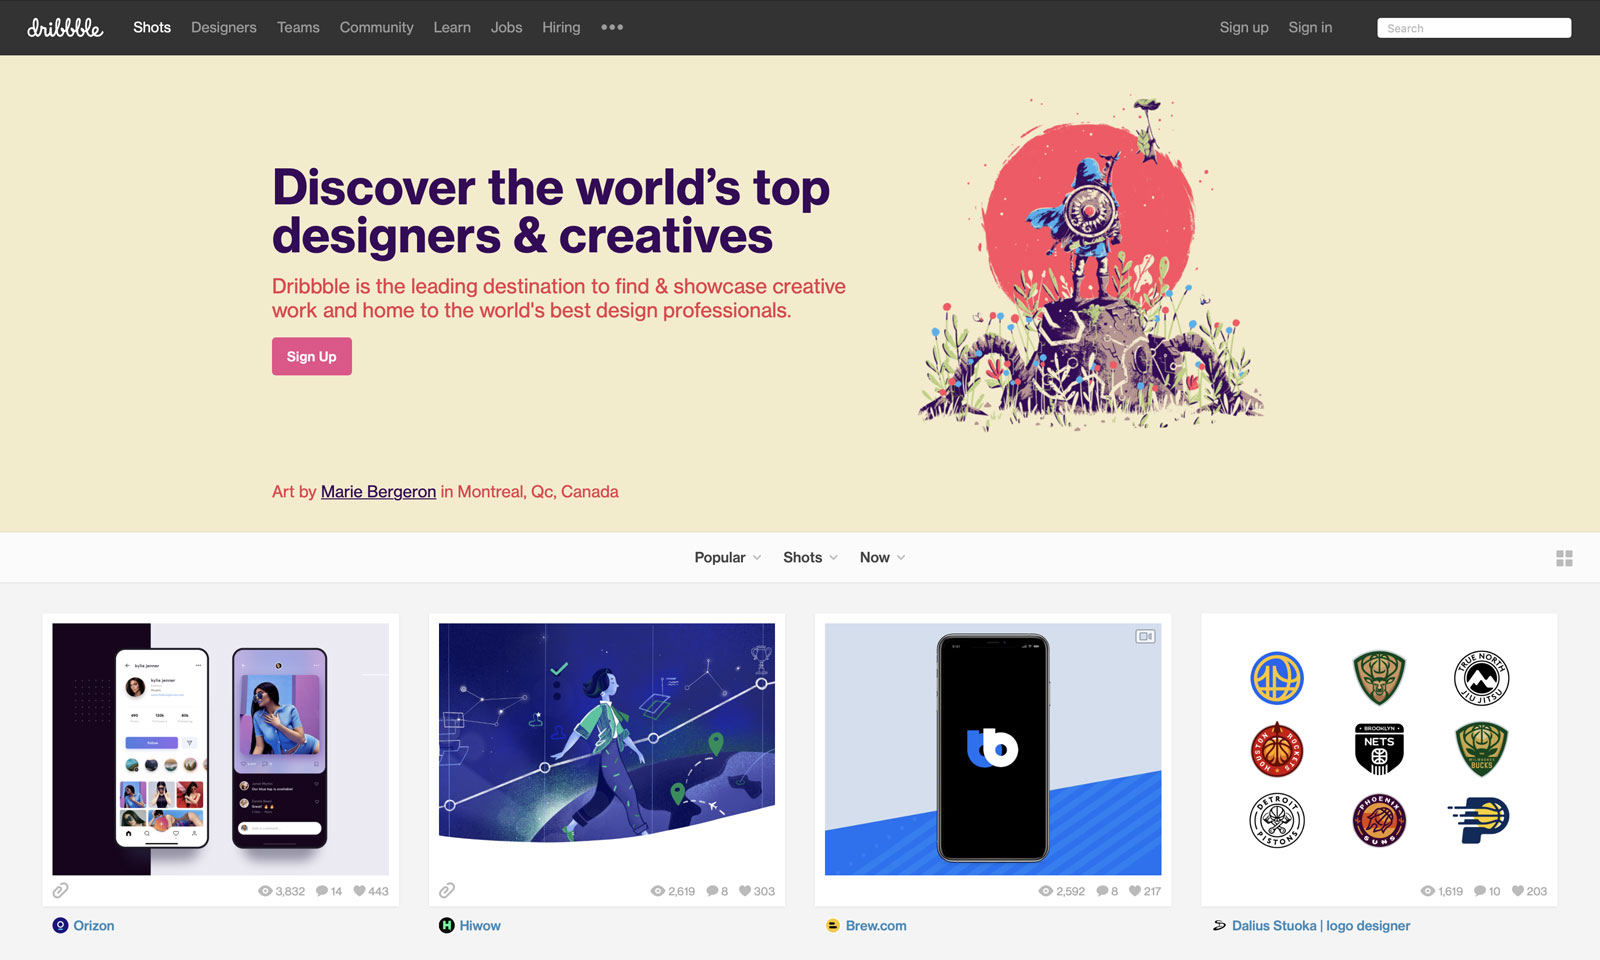 Dribbble's Popular section is always a good place to start your research.